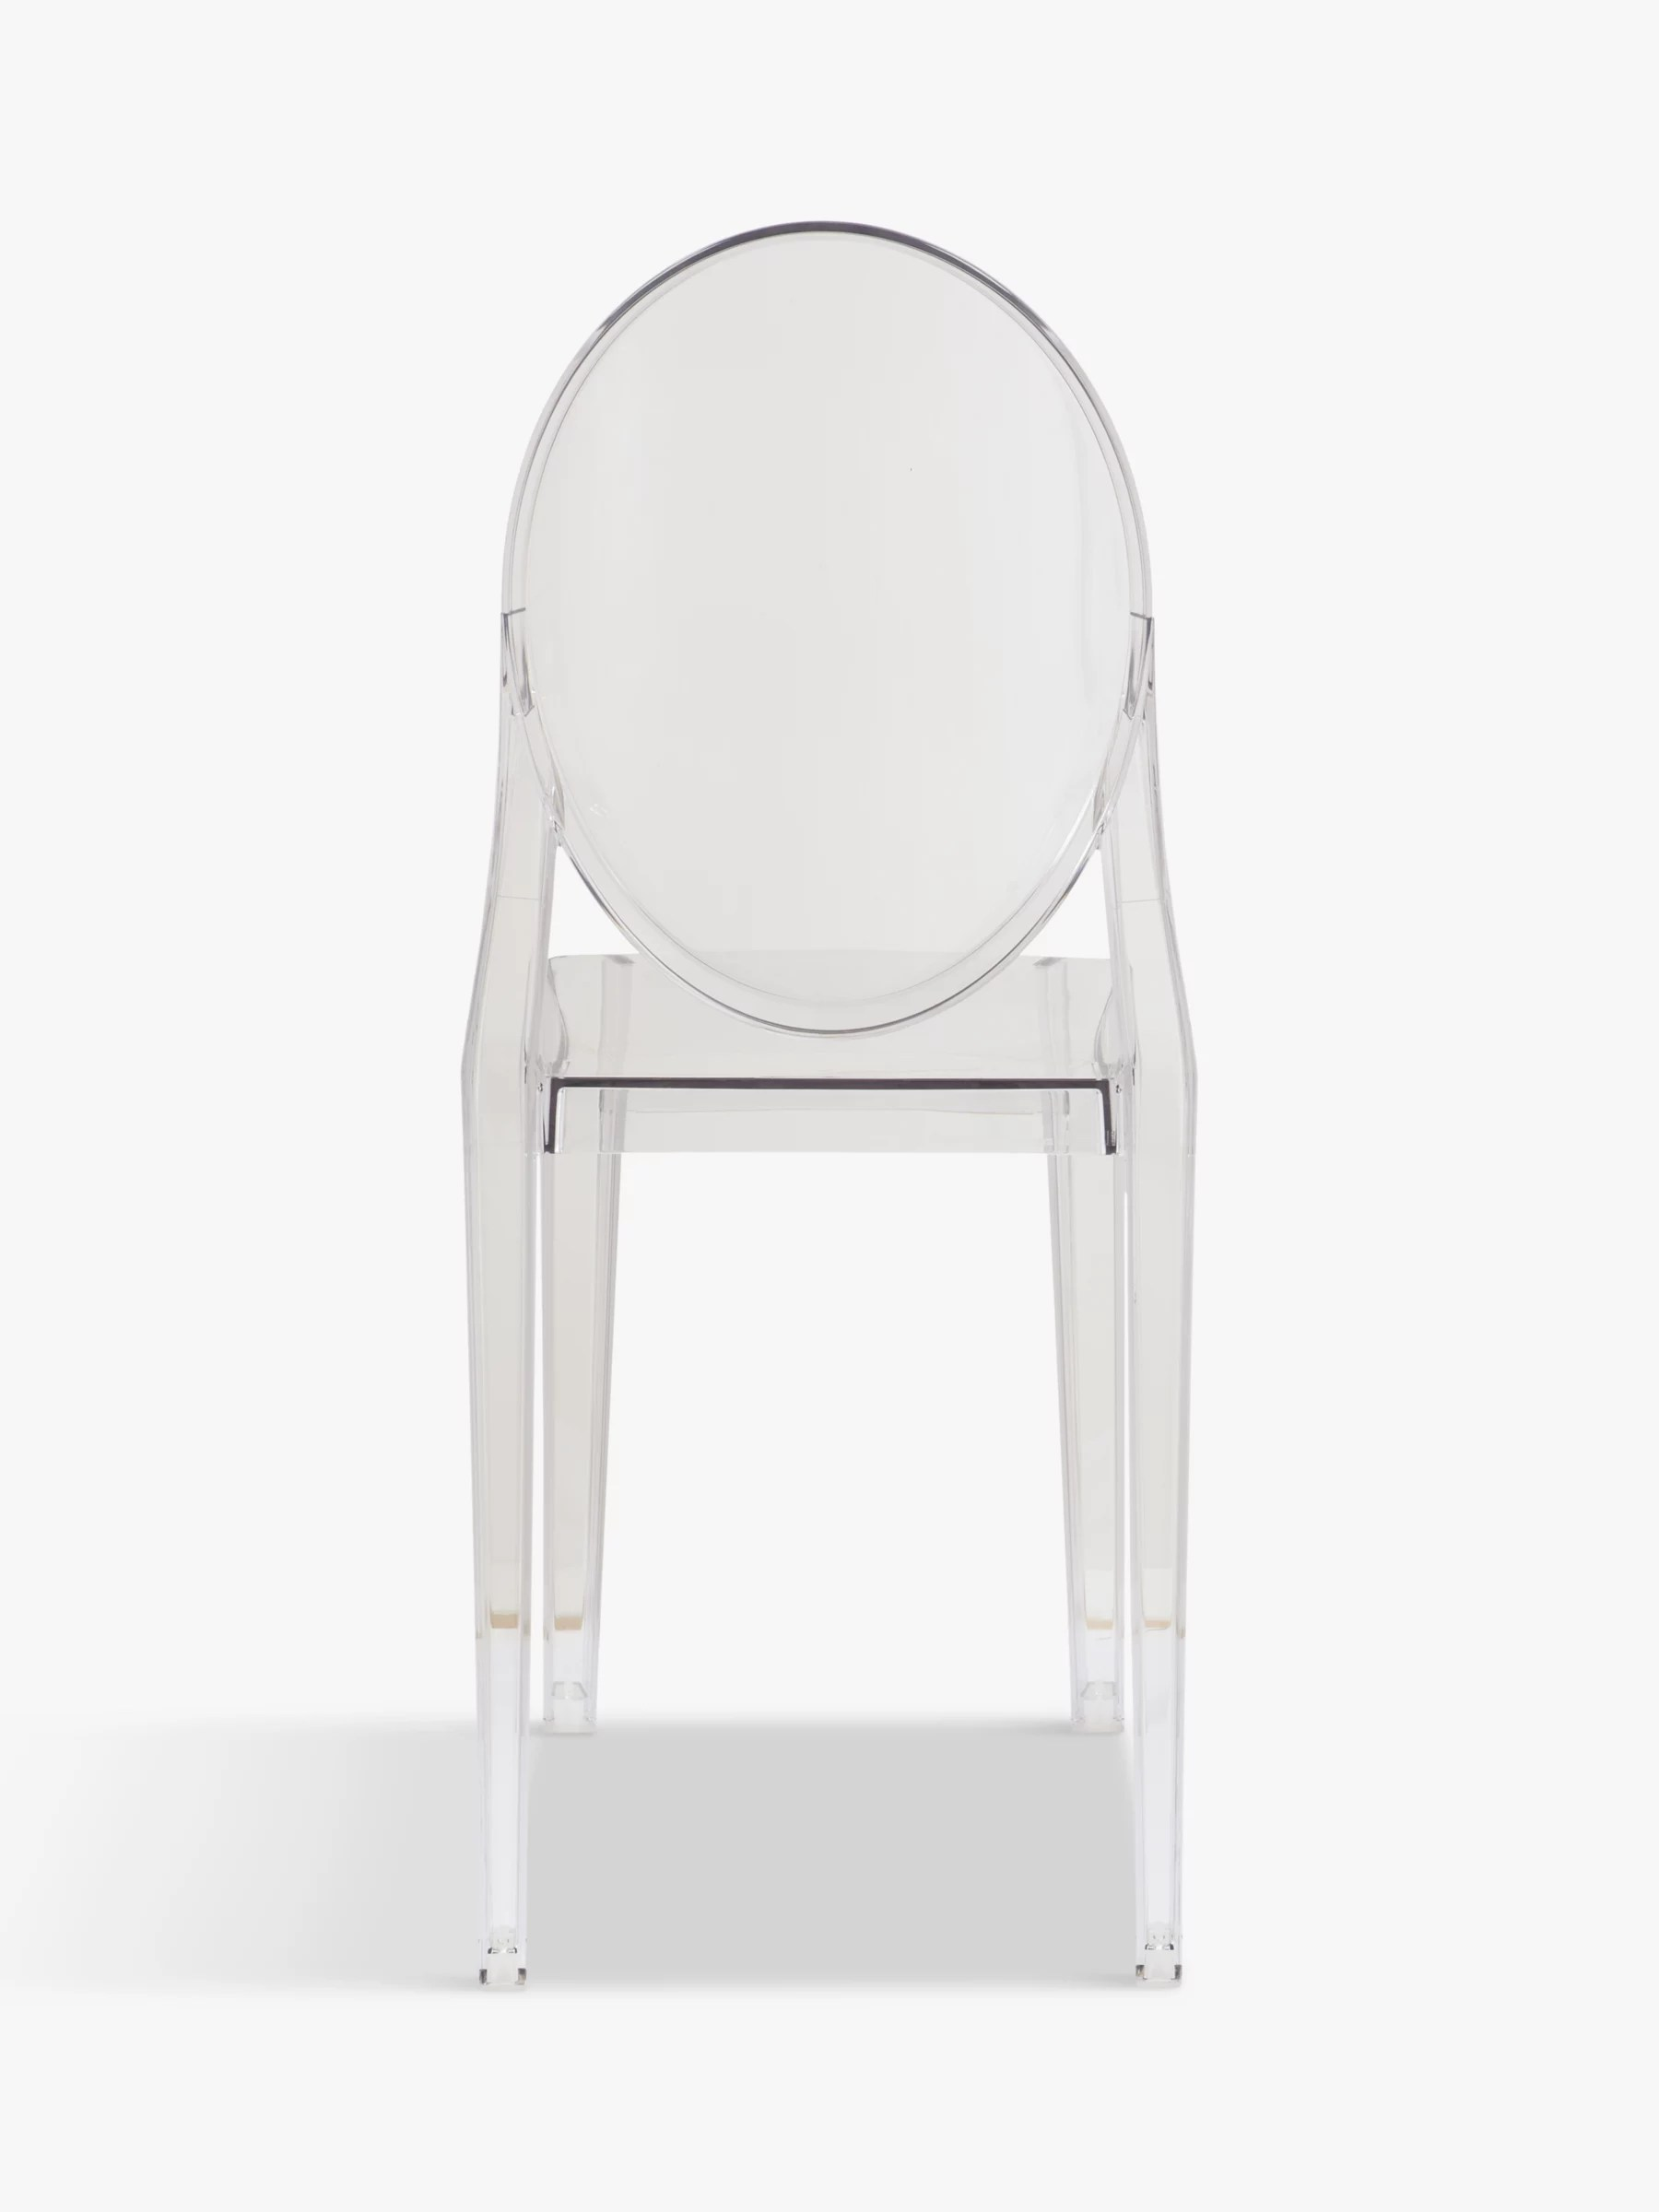 victoria ghost chair mamas and papas vibrating philippe starck for kartell at john lewis